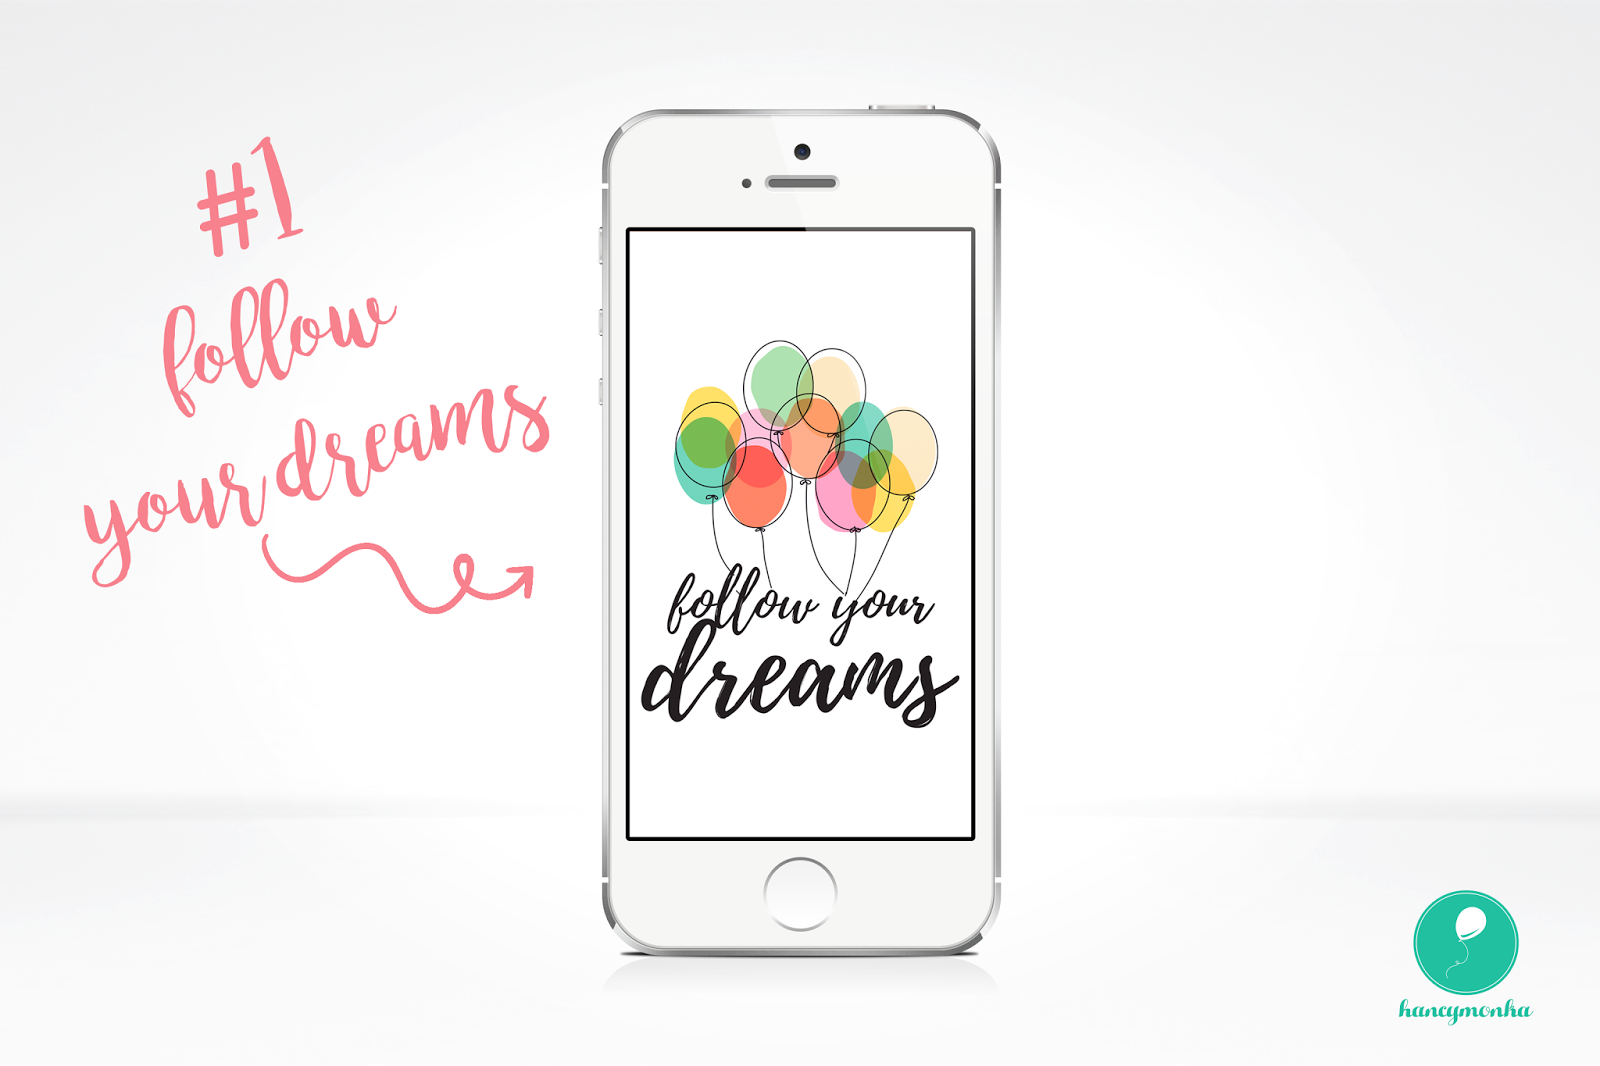 tapeta, tapeta na telefon, tapety, wallpaper, wallpapers, phone, smartphone, graphics, less is more, follow your dreams, hello, positive vibes only, wibracje, freebie, hancymonka, blog grafika